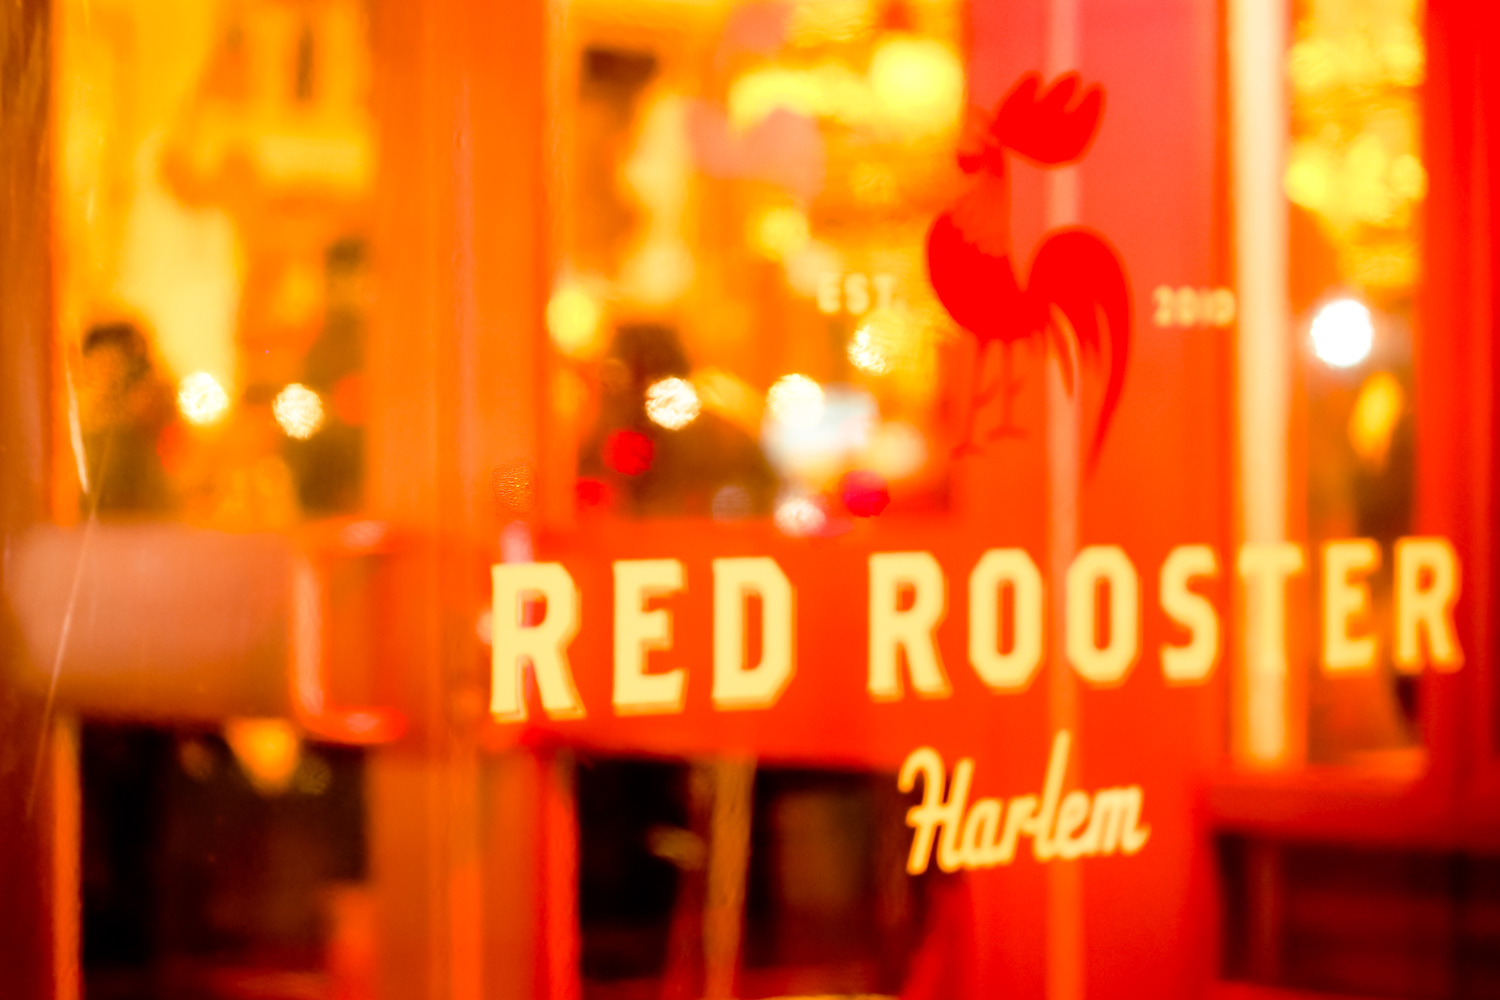 RED ROOSTER, HARLEM by Carine